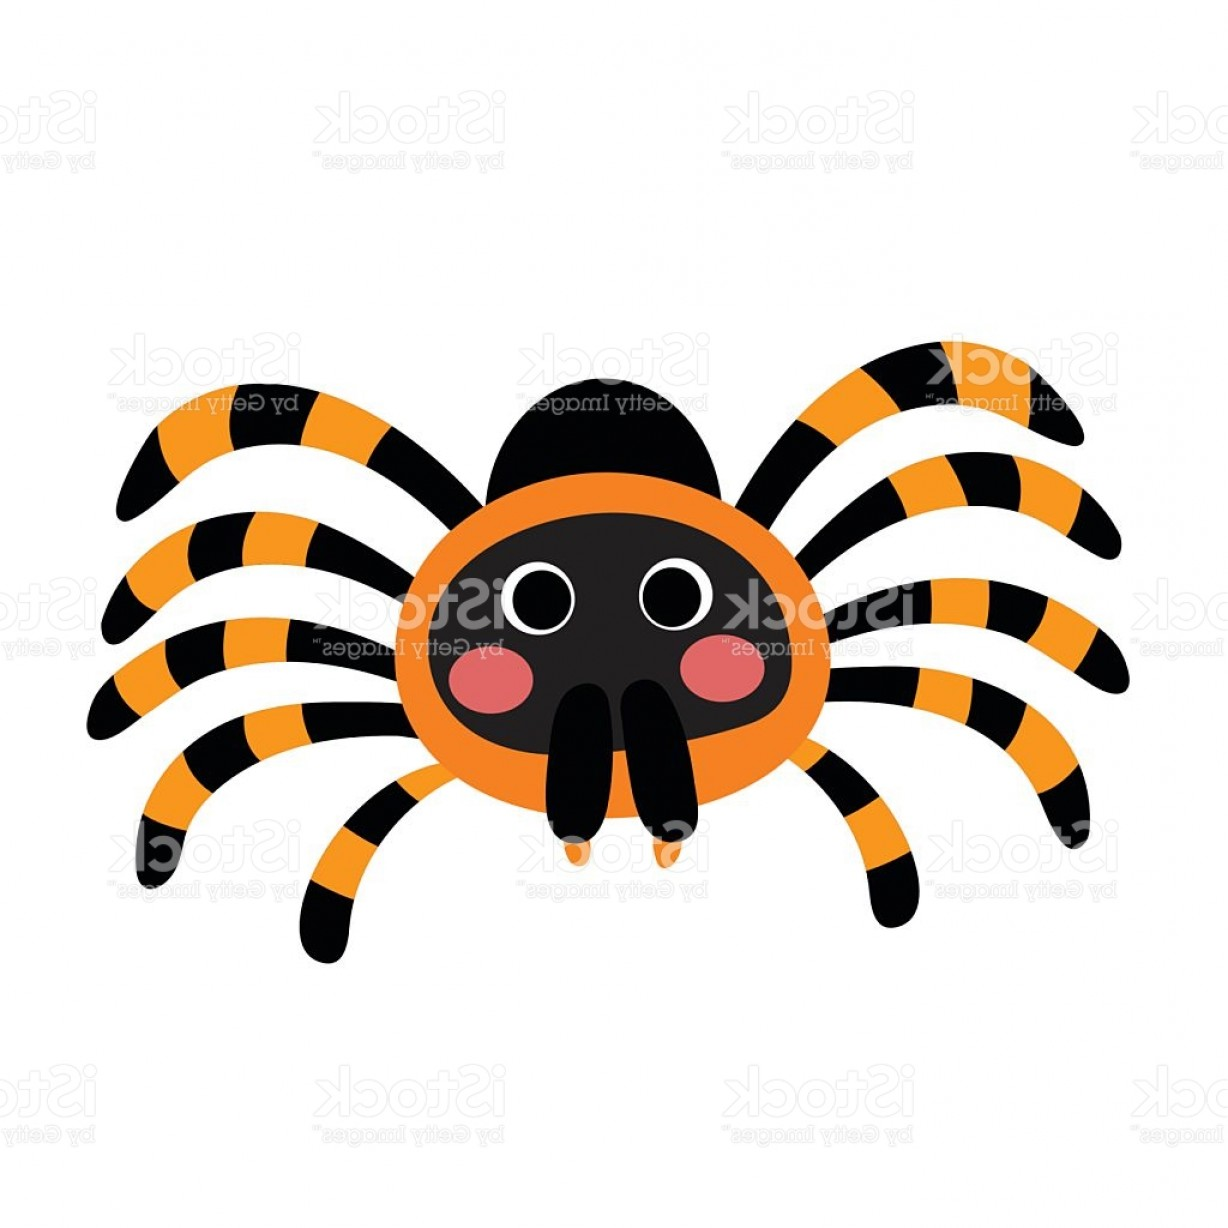 Knee Board Vector: Red Knee Tarantula Animal Cartoon Character Vector Illustration Gm